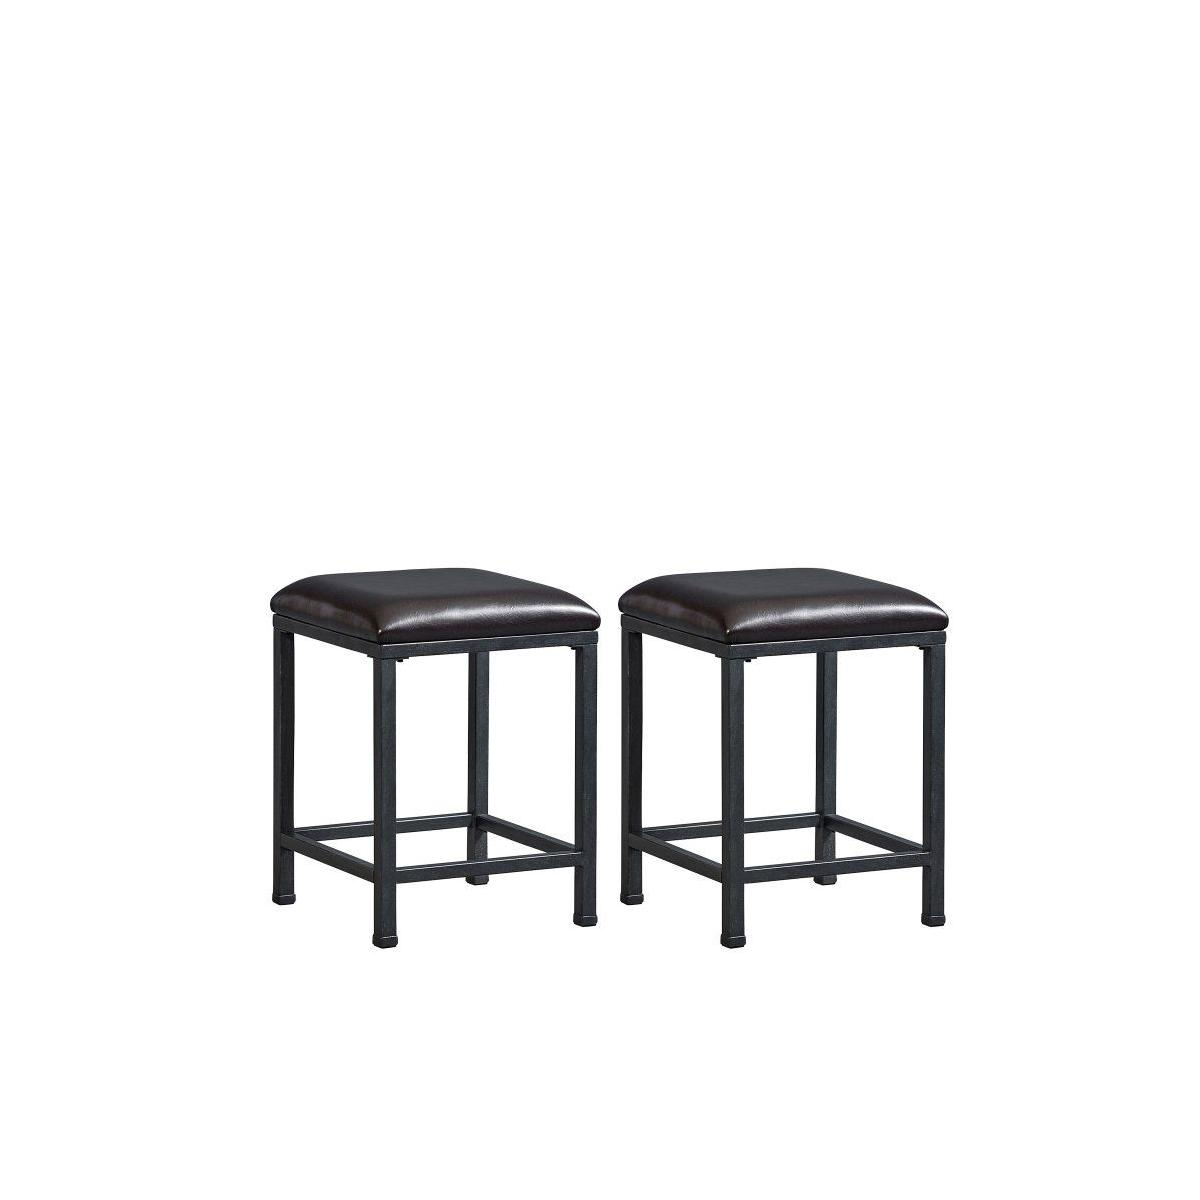 Ridgewood 2-Pack Metal Stools with Upholstered Seat, Brown